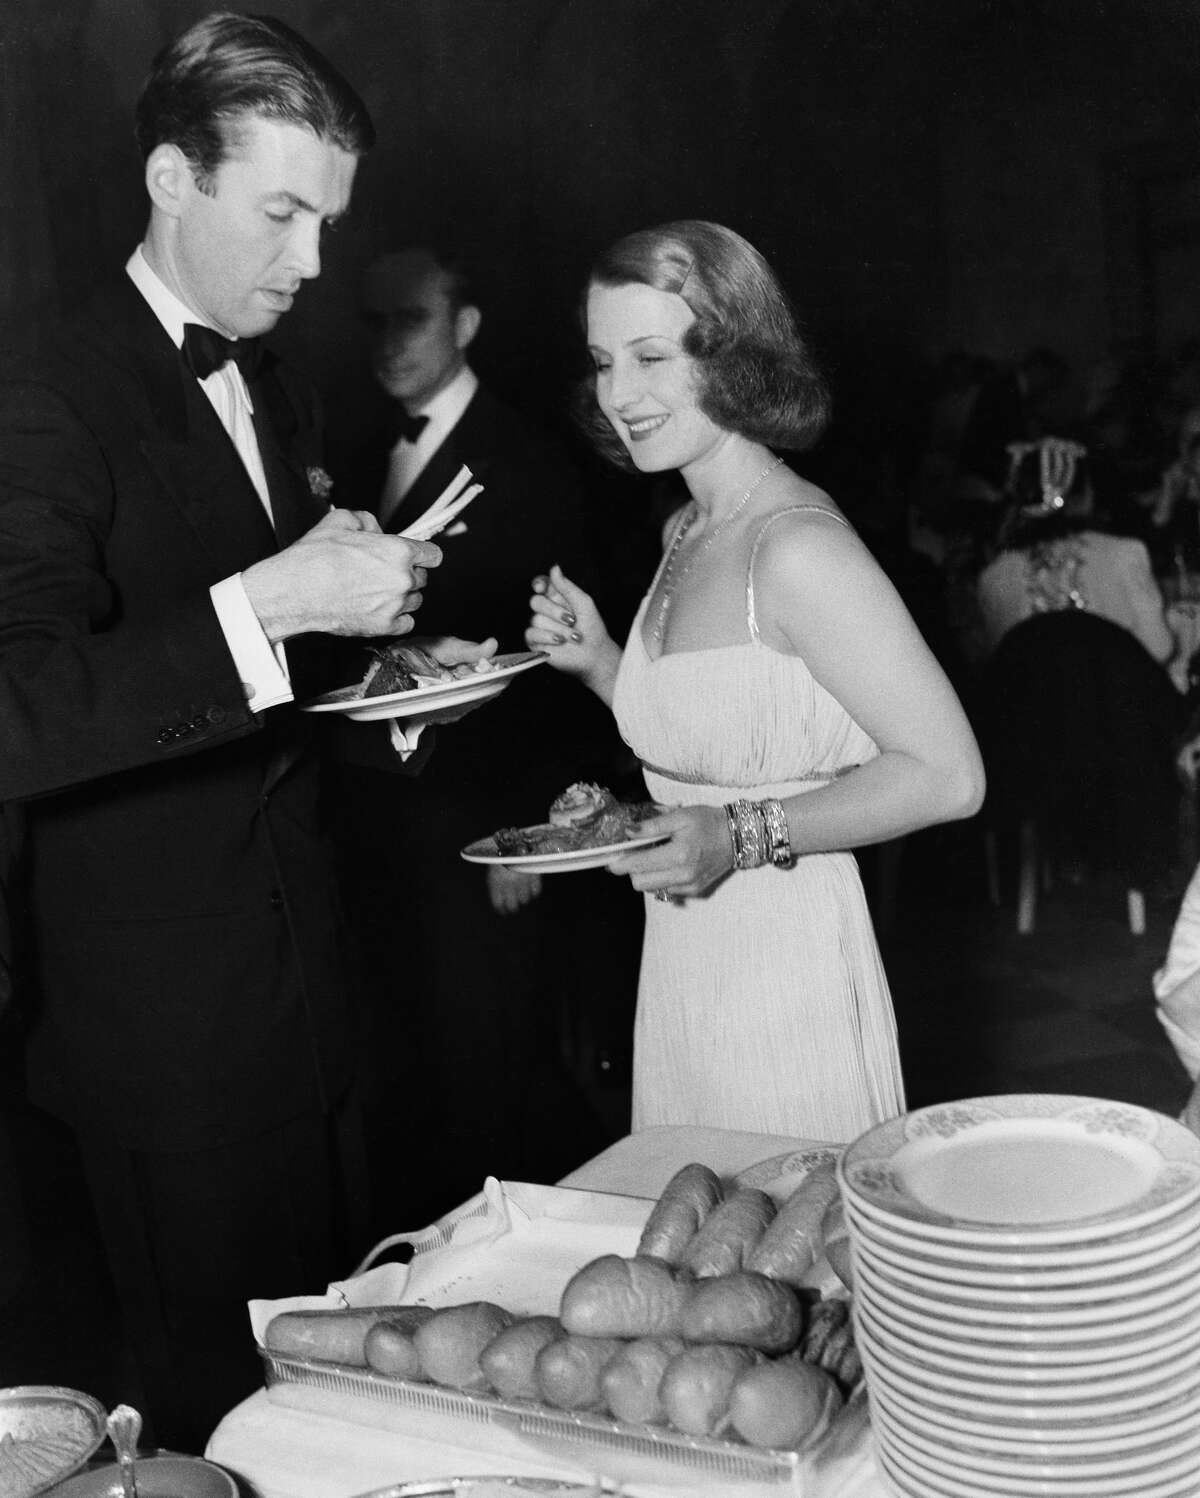 LOS ANGELES,CA - CIRCA 1939: Actor Jimmy Stewart with actress Norma Shearer during an event in Los Angeles, California. (Photo by William Grimes/Michael Ochs Archives/Getty Images)